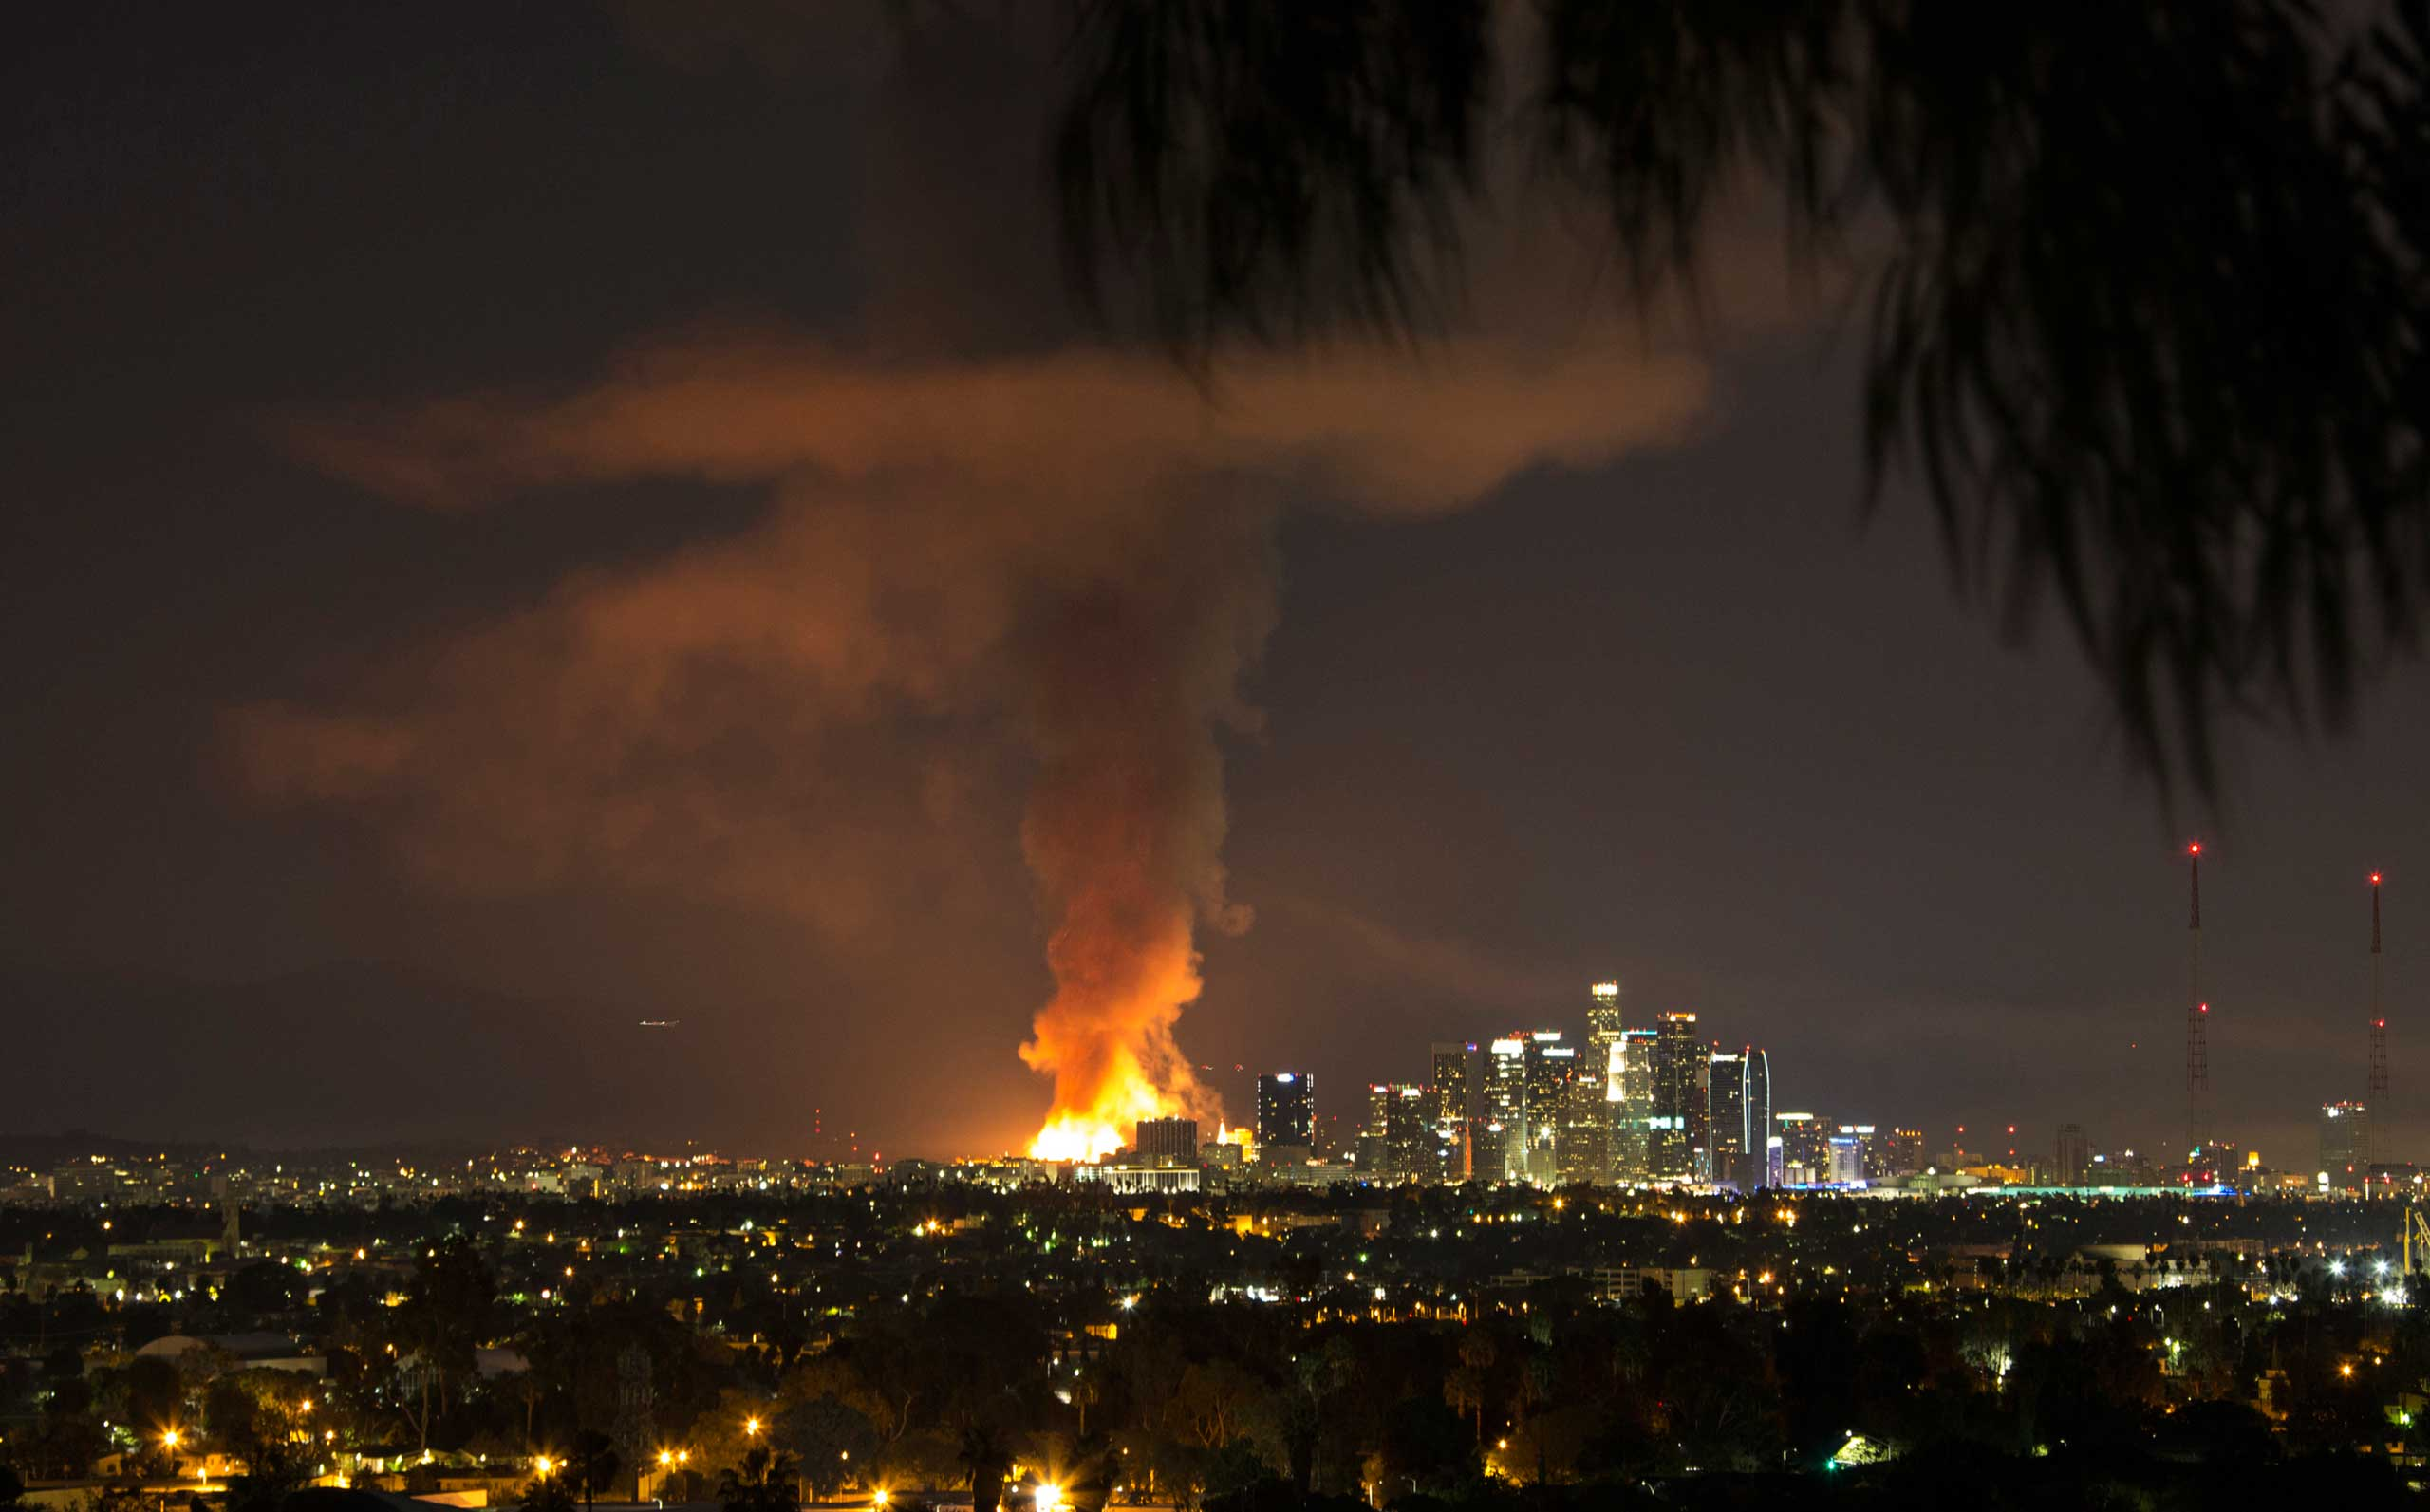 A massive fire engulfing an apartment building construction site near downtown Los Angeles on Monday, Dec. 8, 2014.